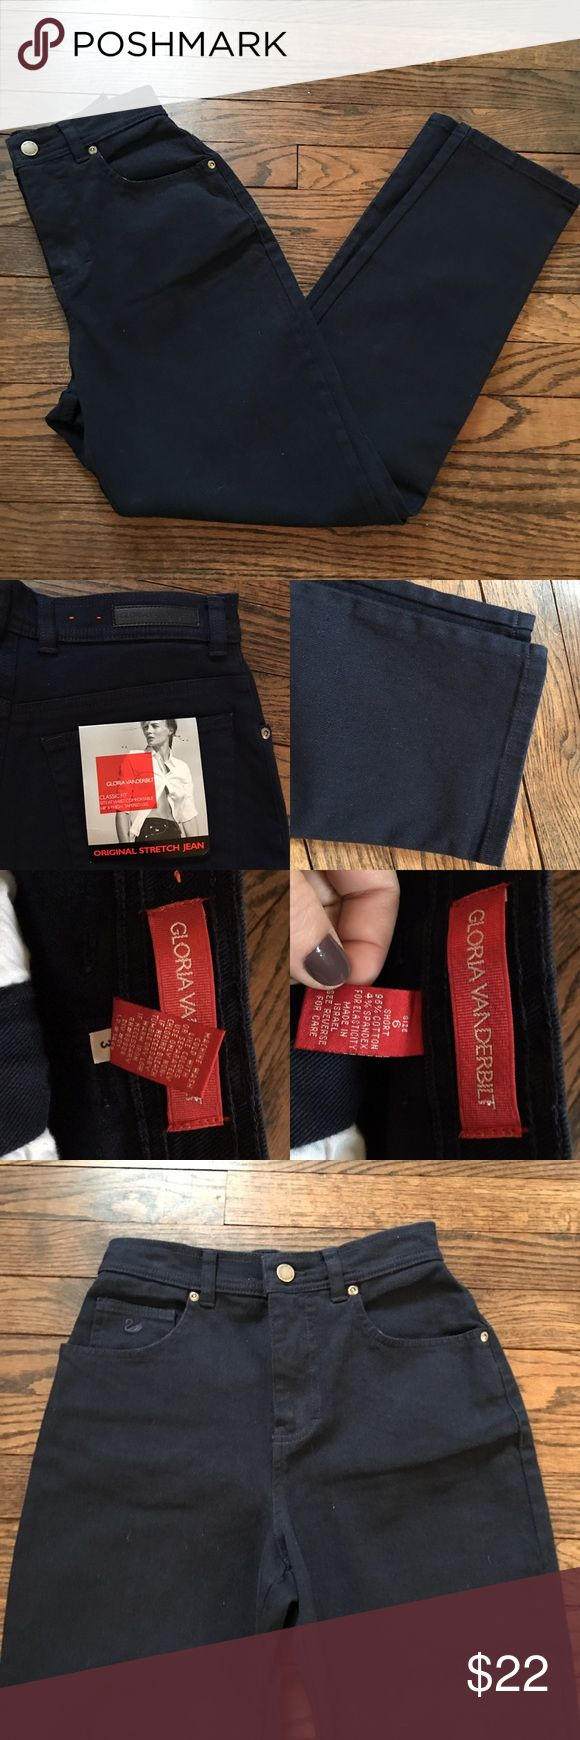 "NWT Gloria Vanderbilt Classic Fit Navy Jeans 6S ITEM: NWT Gloria Vanderbilt Original Stretch Jean, Classic Fit, Size 6S or 6P Navy Blue  Measurements: 12.5"" flat across the waist, 18"" flat across hips, Inseam 28"" and ankle flat 6""  11"" Rise (high waisted)  Condition: No holes or stains, non-smoking home  Shop with confidence! I take pride in describing my listings exactly as they are in real life. I don't hide flaws or problems, they are always noted and photographed. I like to ship quickly…"